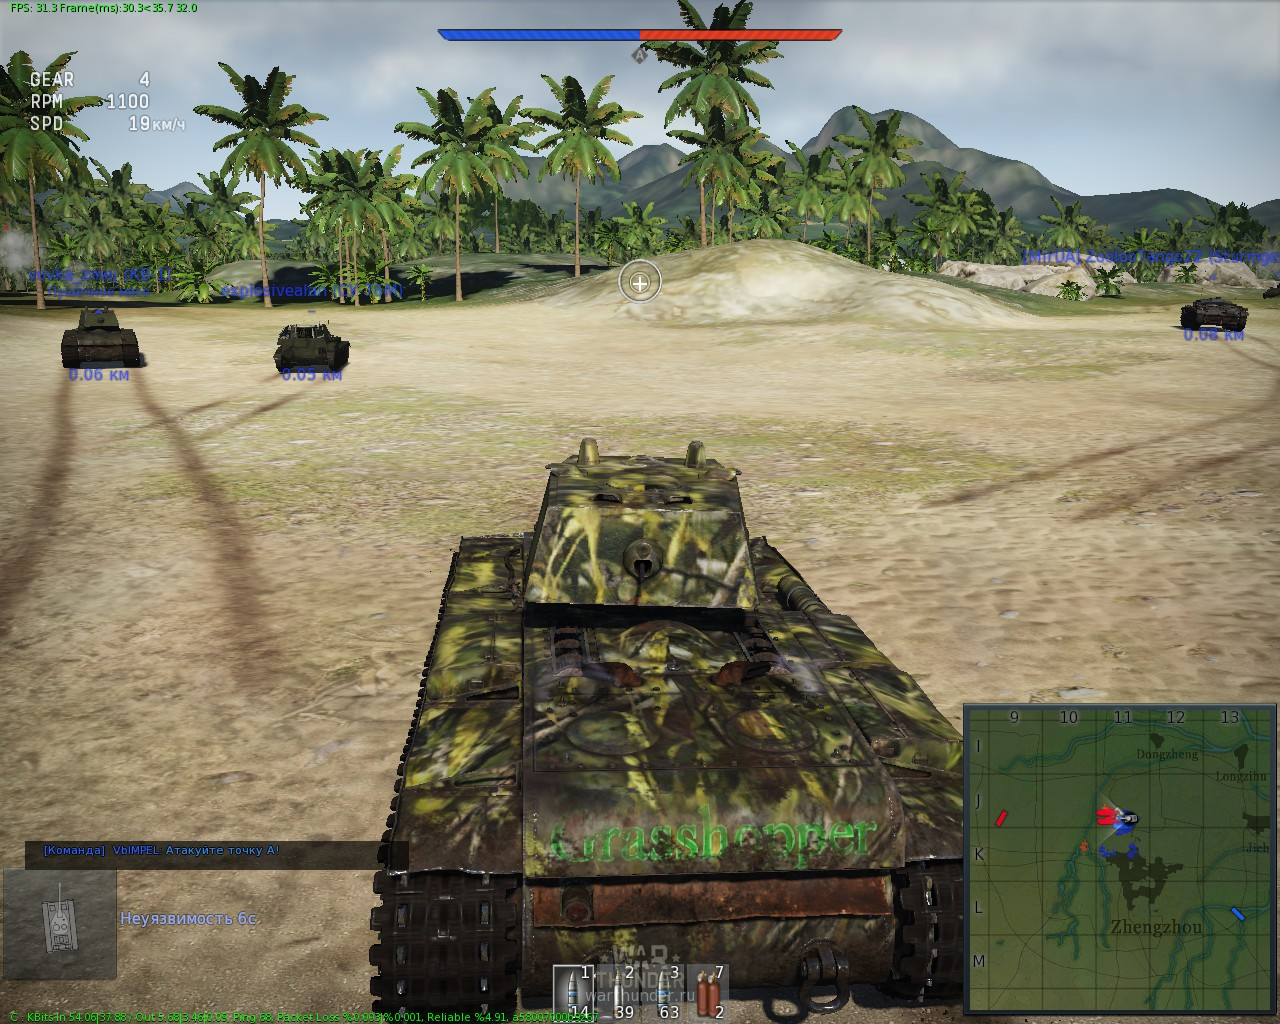 shot 2014.05.14 00.01.26.jpg - War Thunder